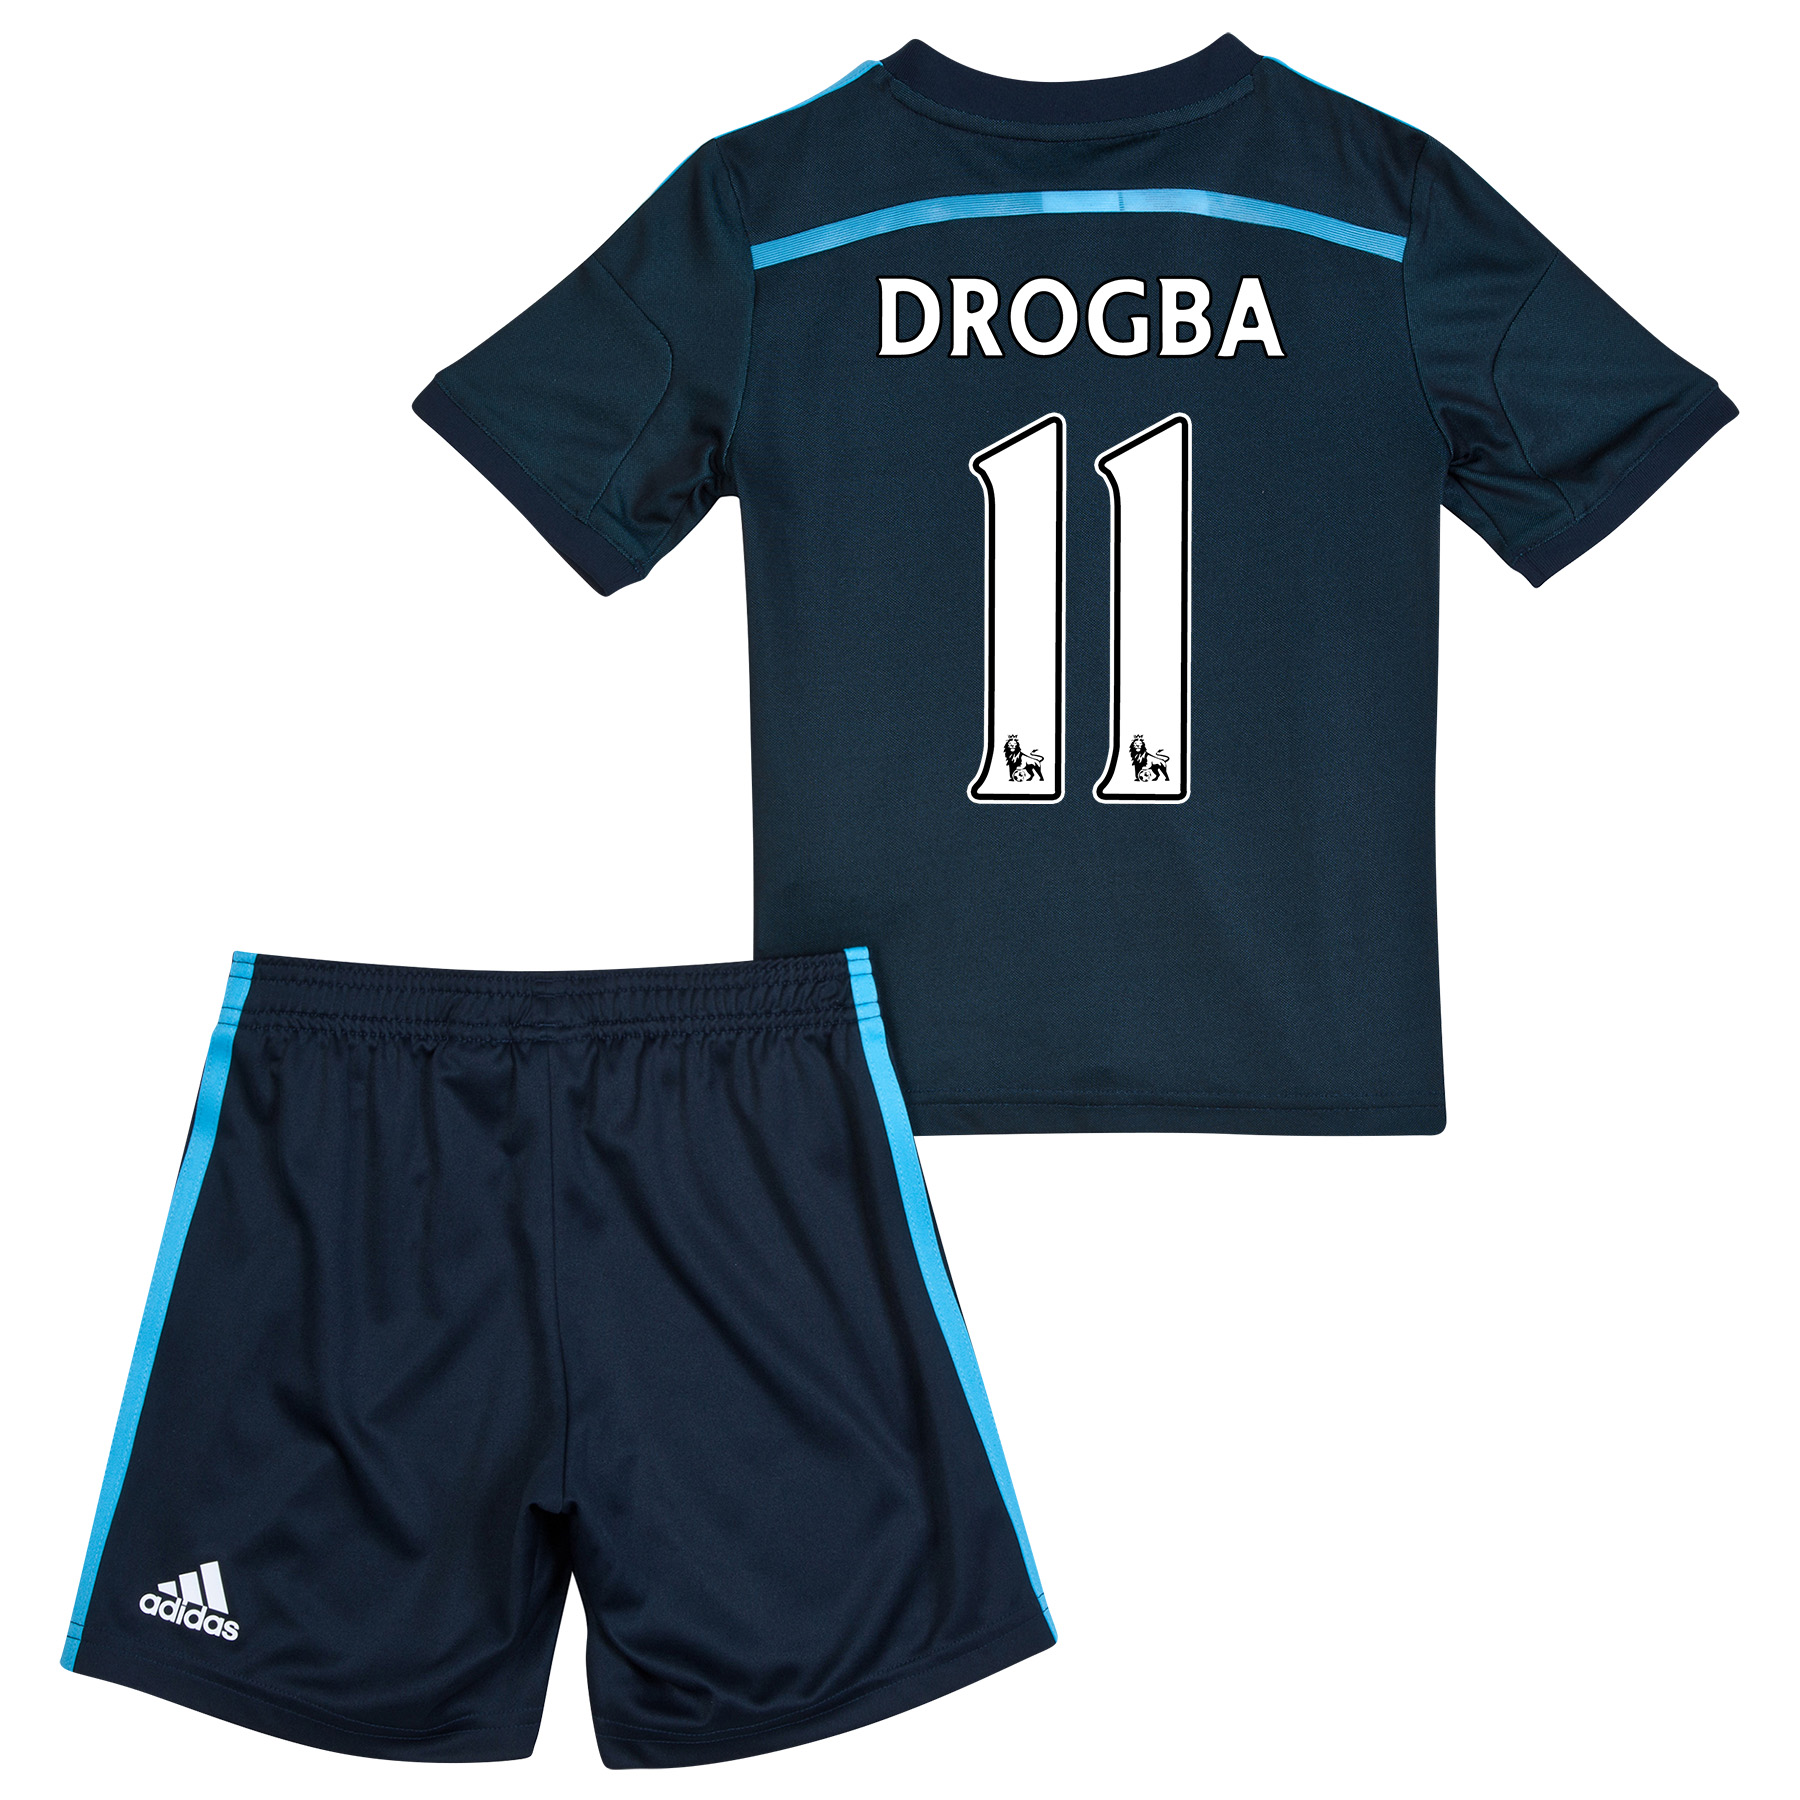 Chelsea Third Mini Kit 2014/15   Let your little one support their favourite team with pride and style with this dark blue 2014/15 Chelsea Third Mini Kit. Styled with the team crest on the left of the chest and adidas three stripe logo on the right, your child can wear this set for tea